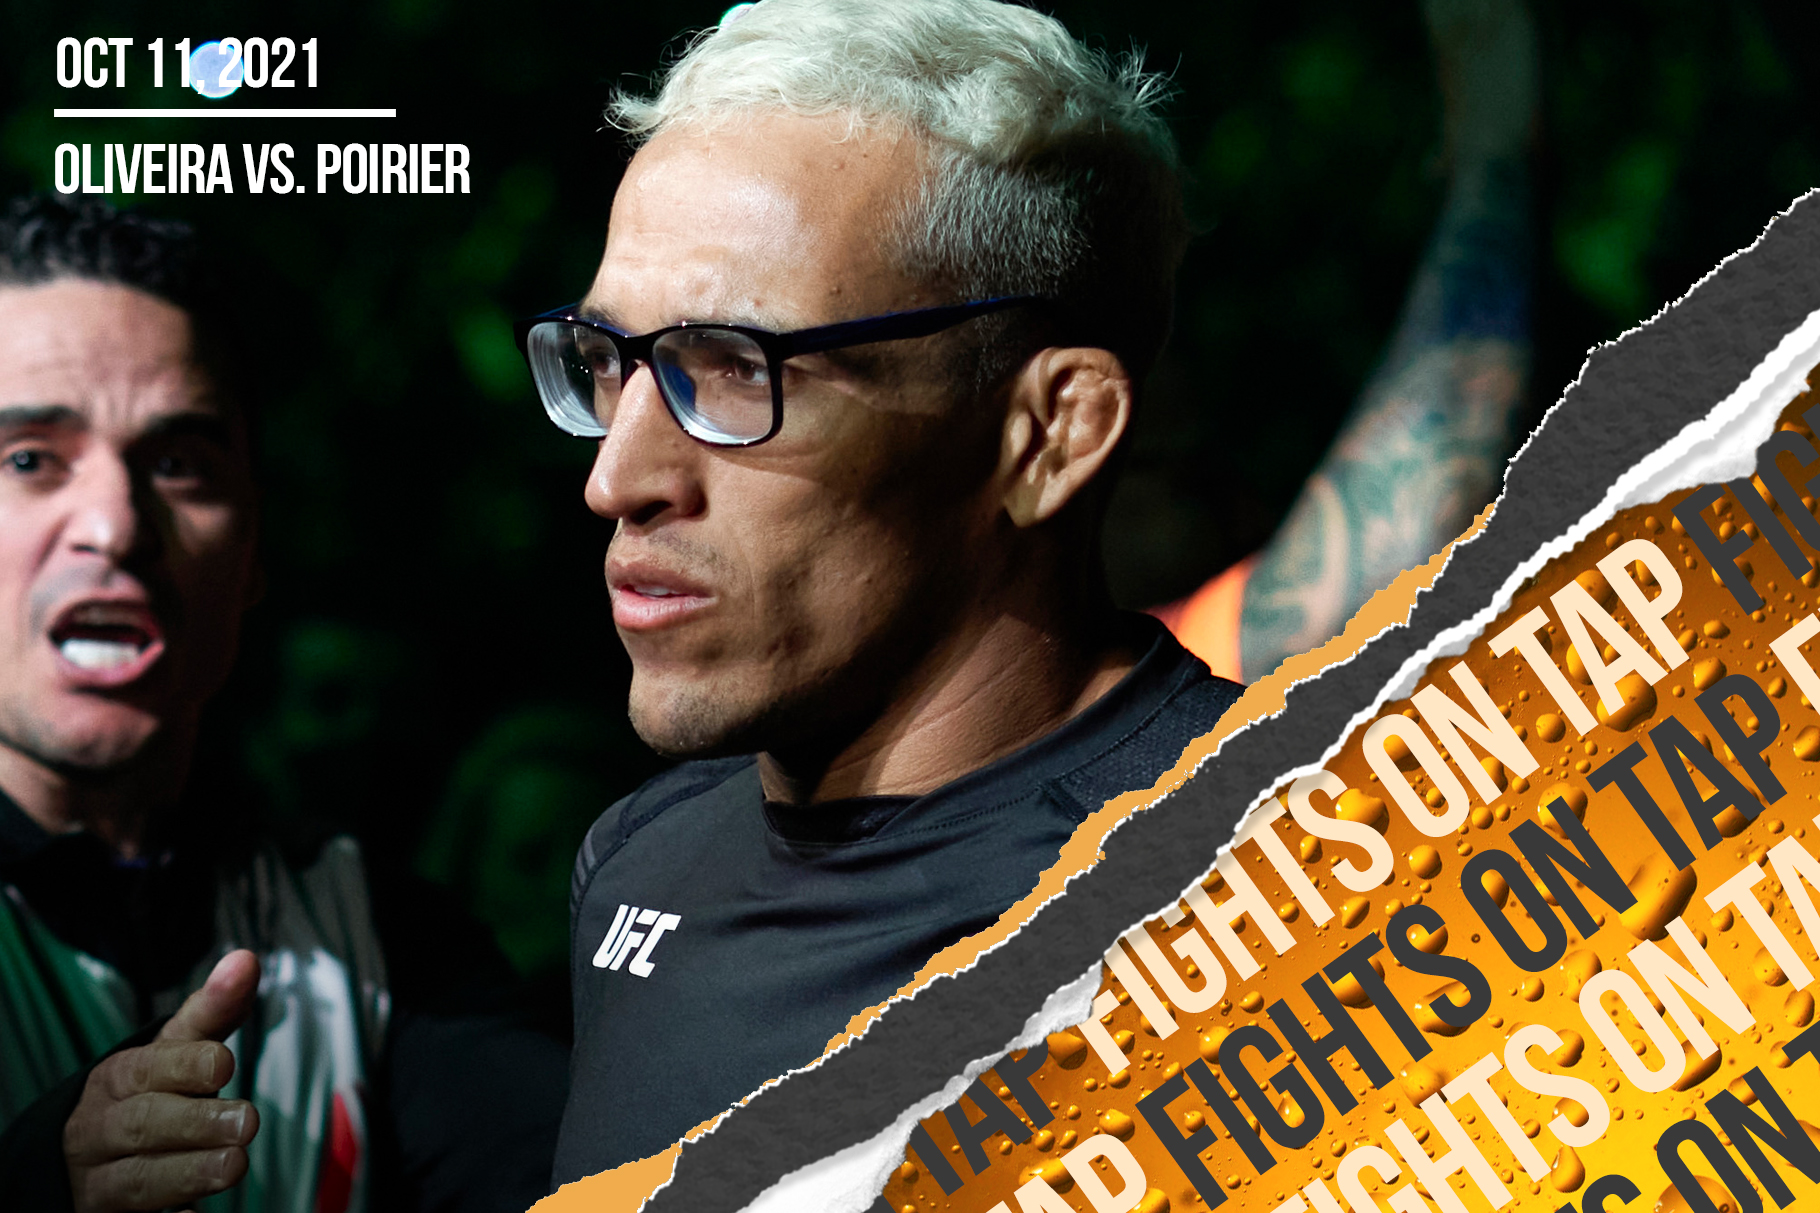 Fights on Tap: Charles Oliveira vs. Dustin Poirier among 21 UFC fights announced